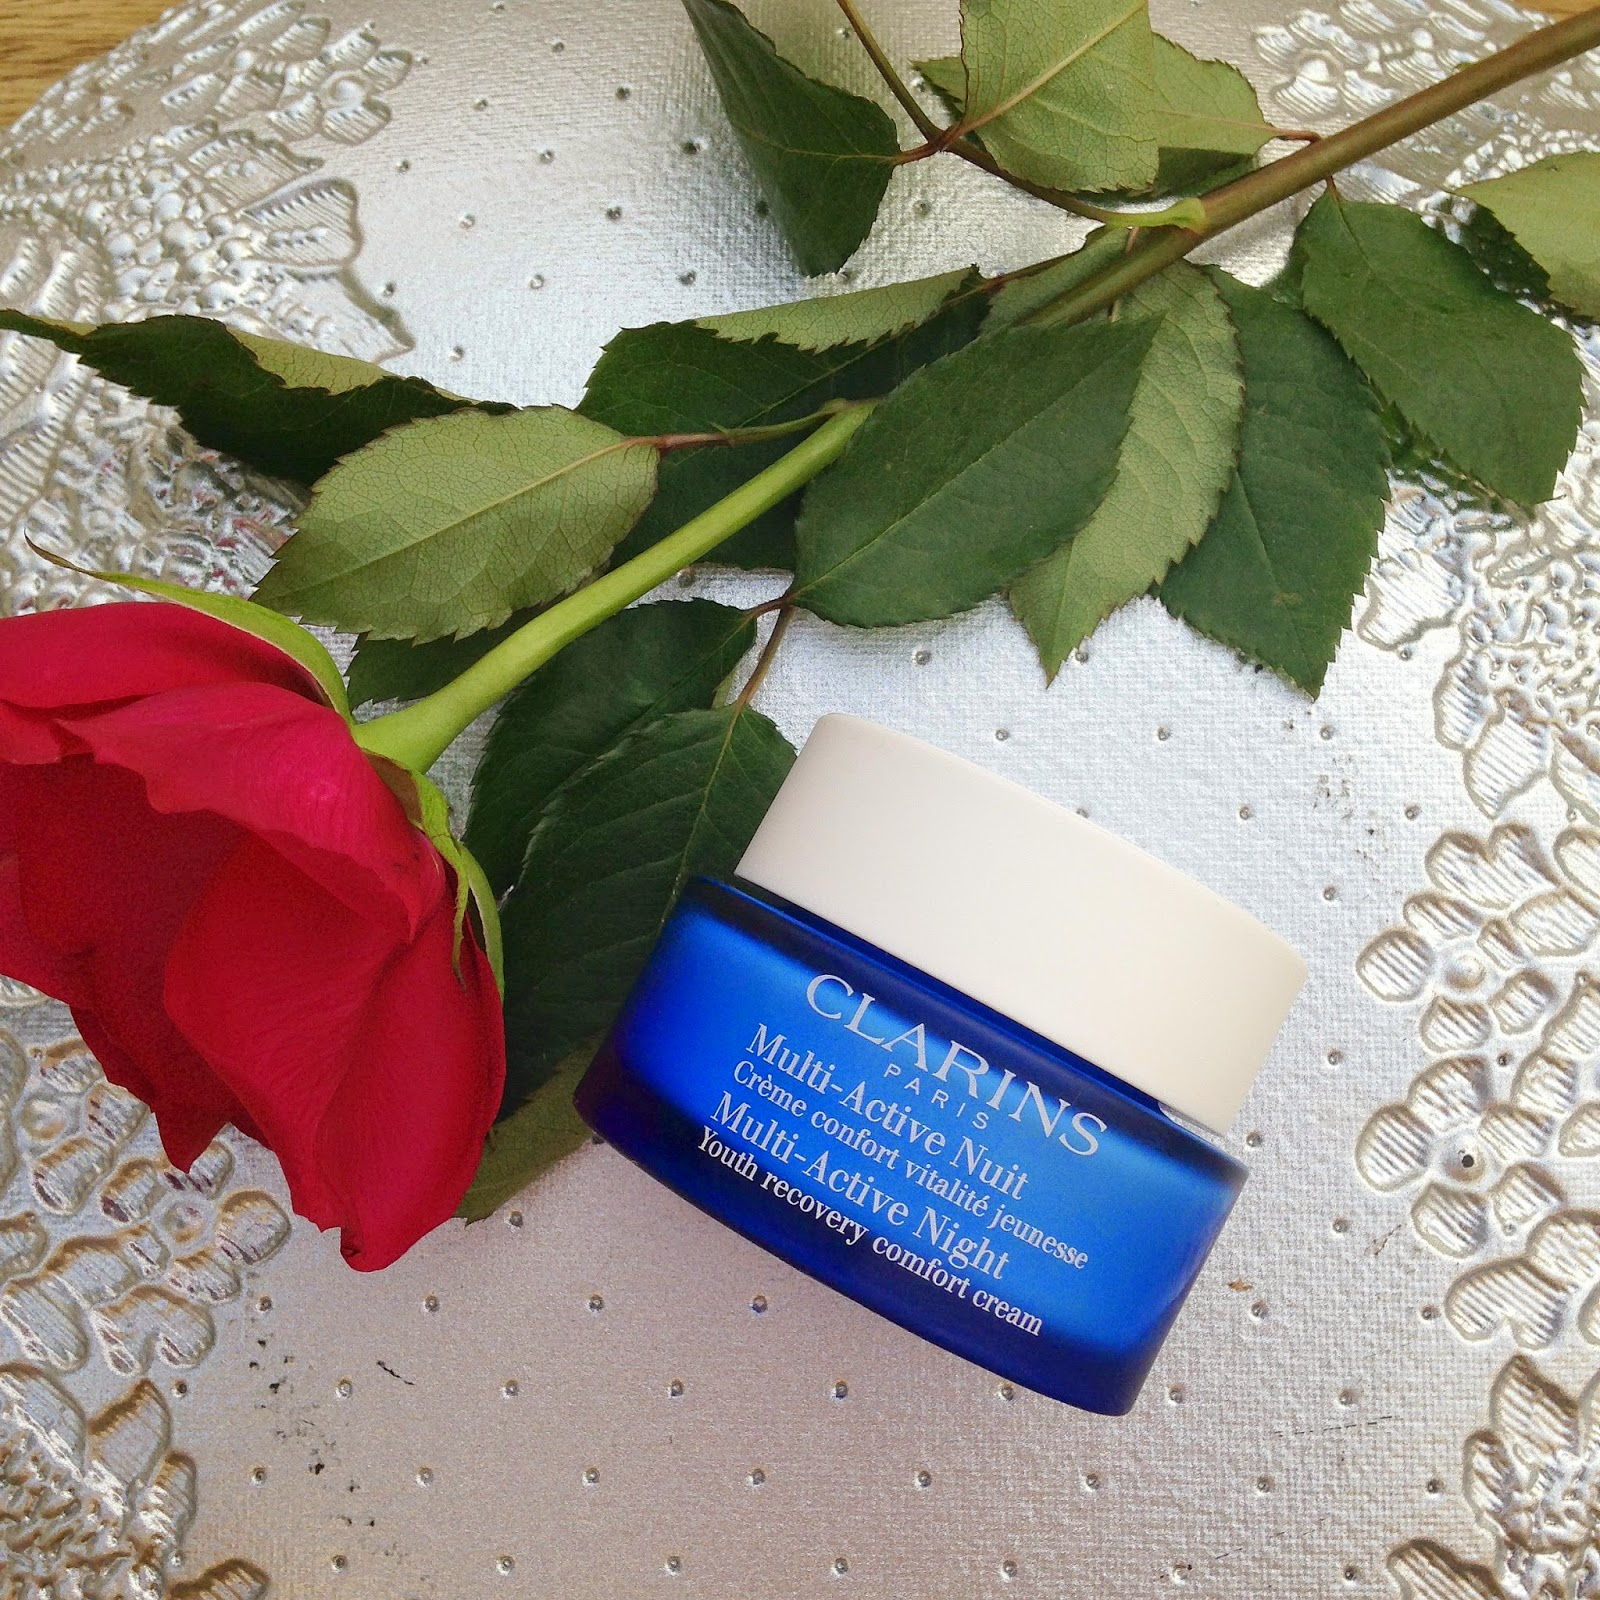 picture of clarins multi active night youth recovery comfort cream